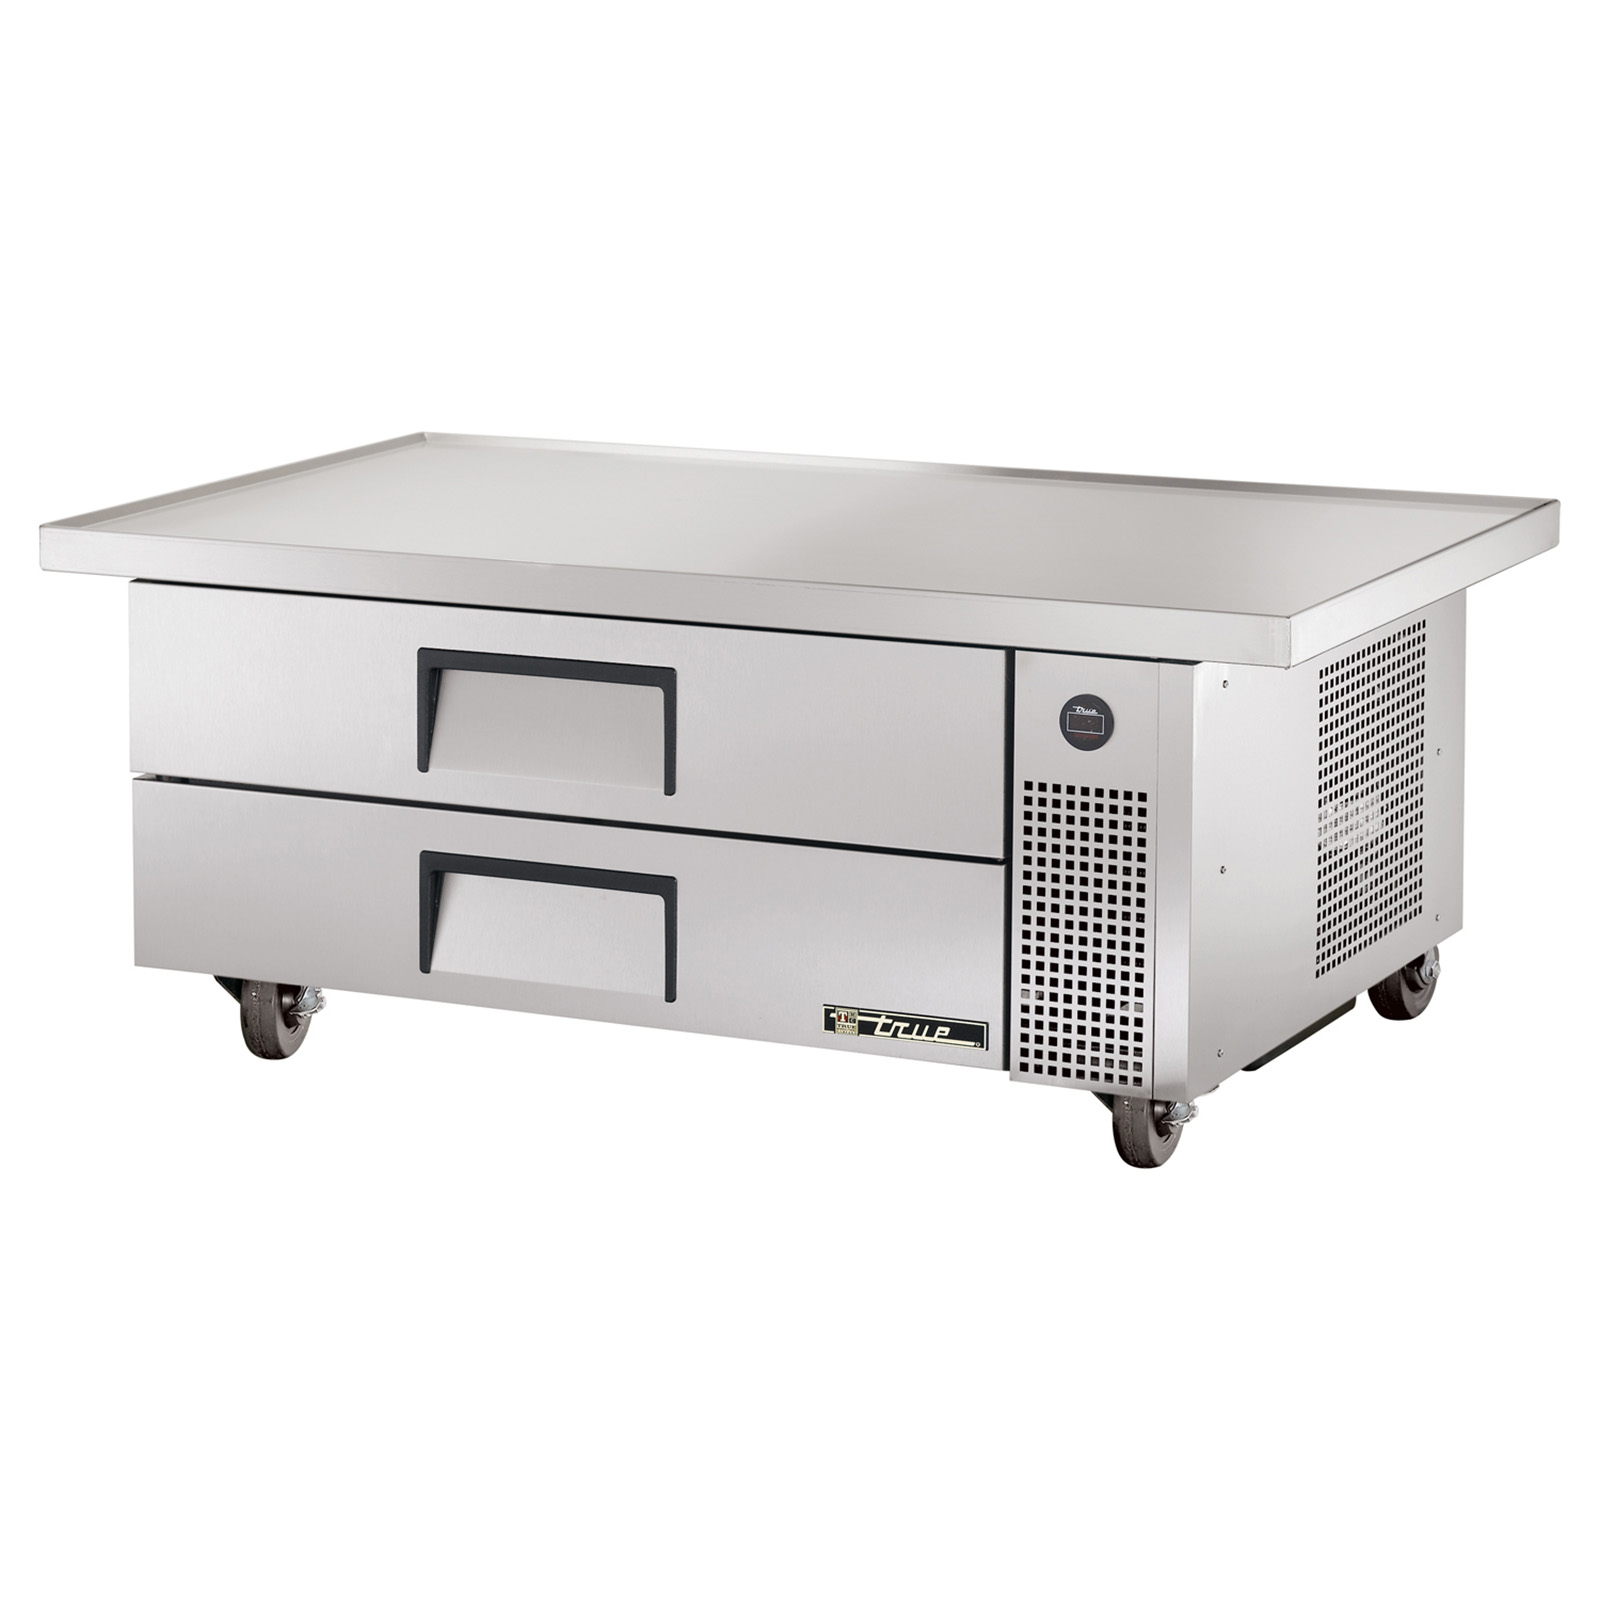 TRCB-52-60 True - Refrigerated Chef Base 51-7/8